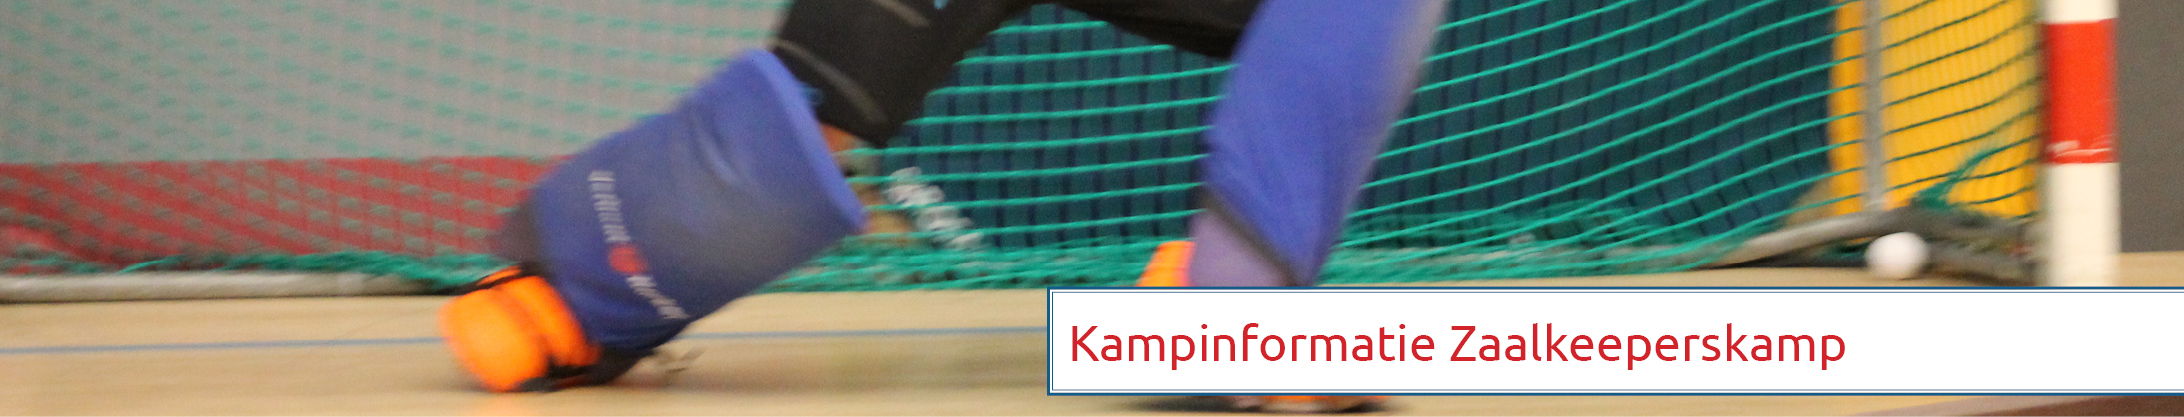 Kampbrief zaal keepers hockey kamp